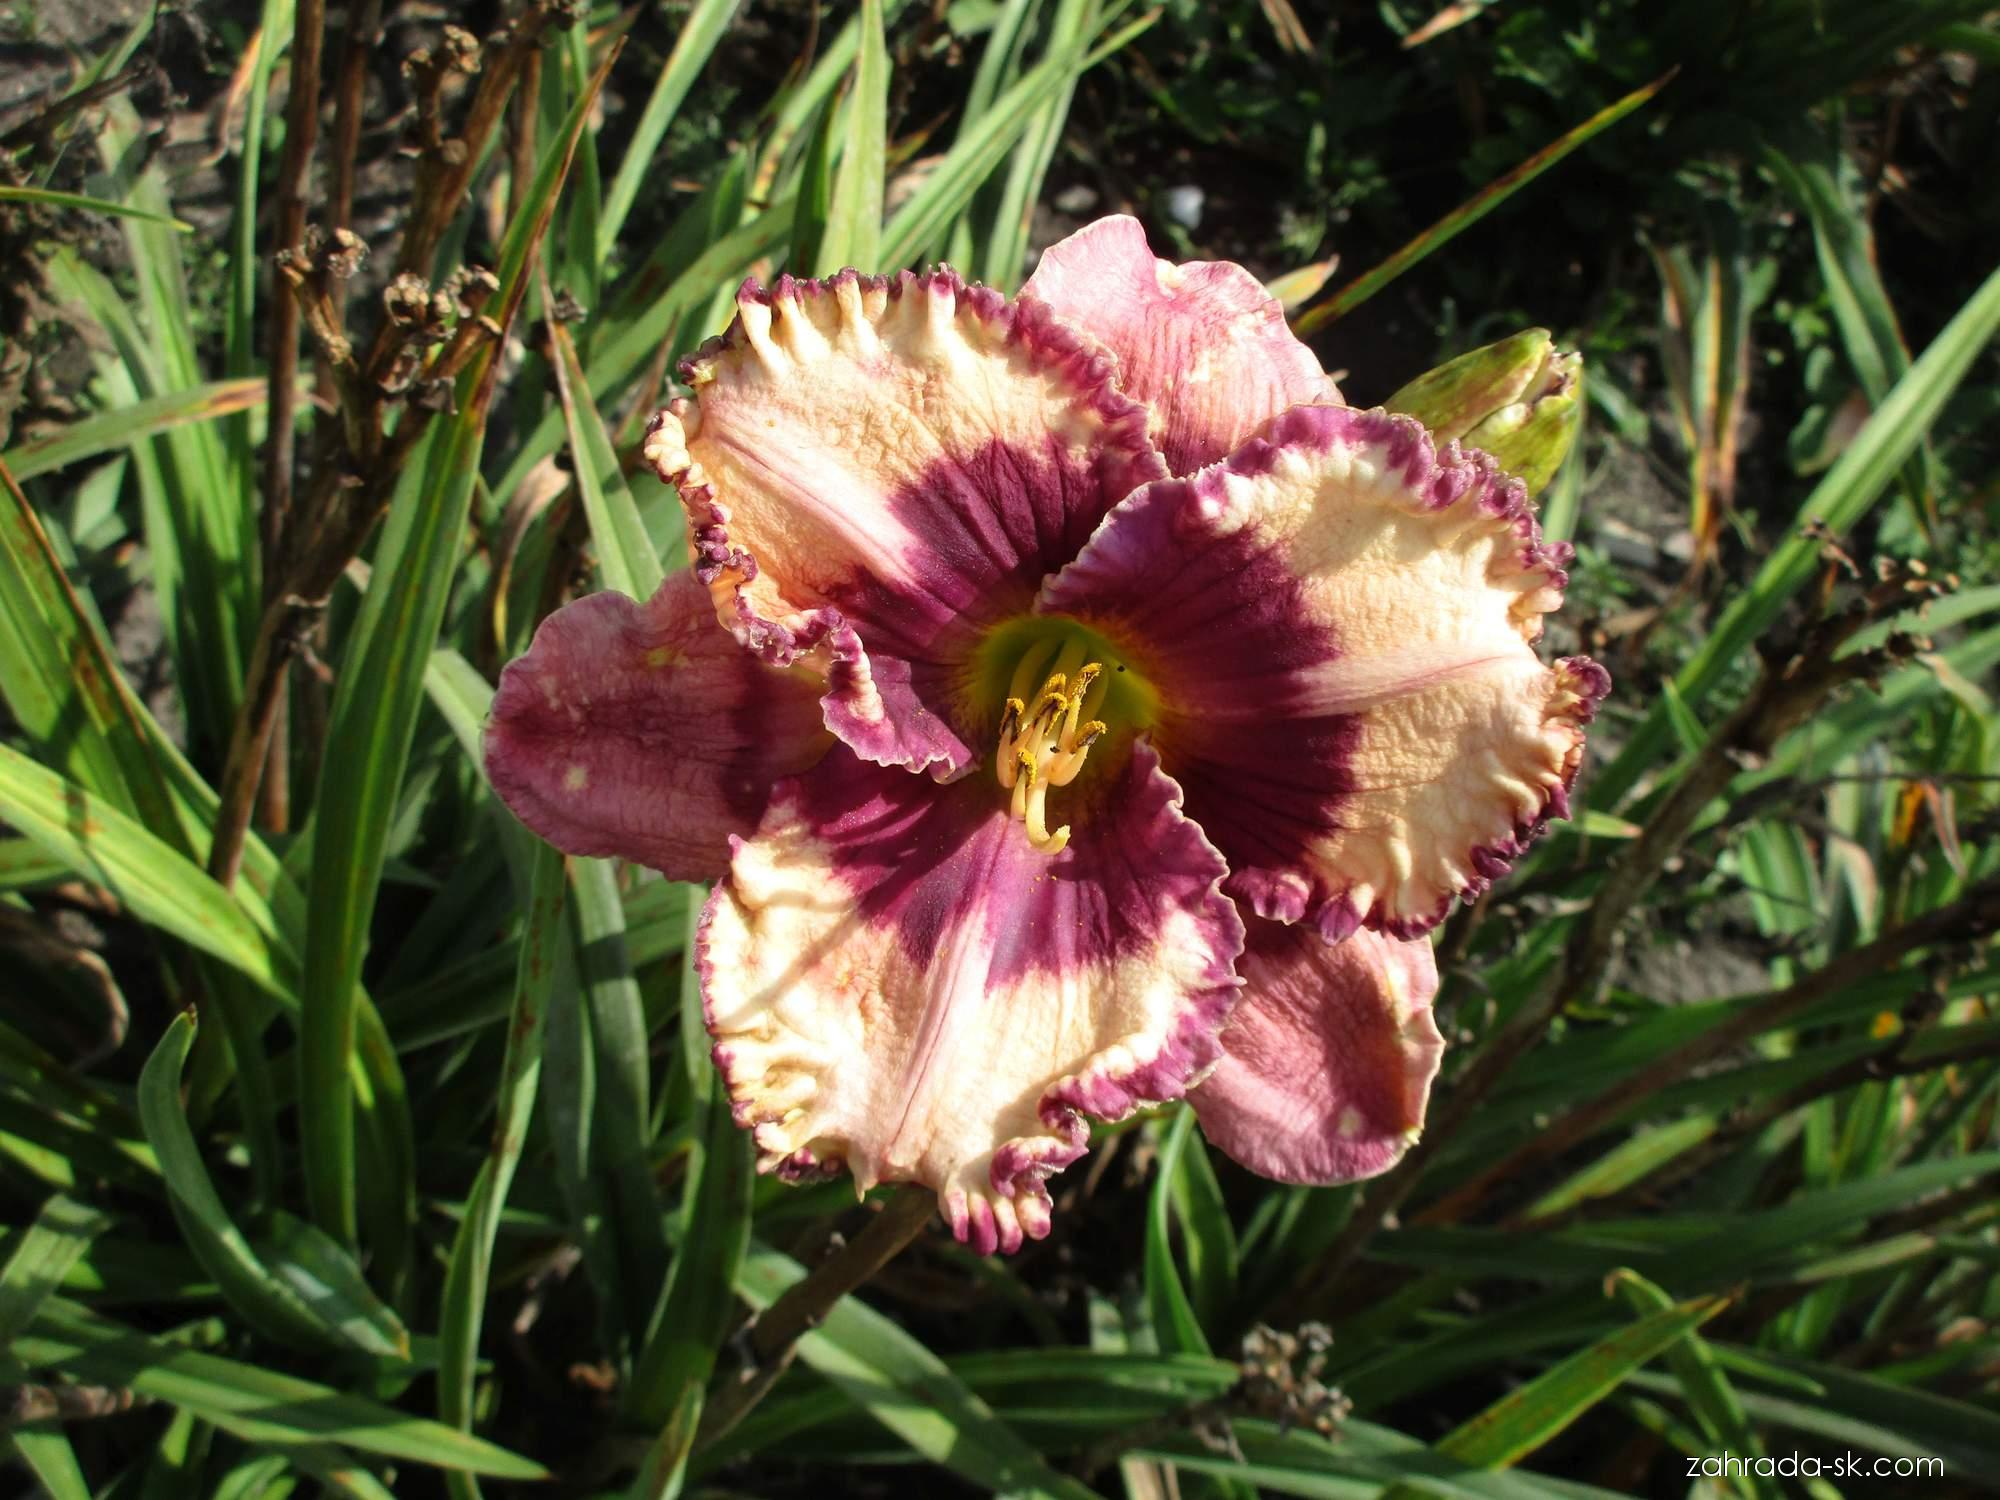 Hemerocallis Regal Amethyst (ľaliovka)